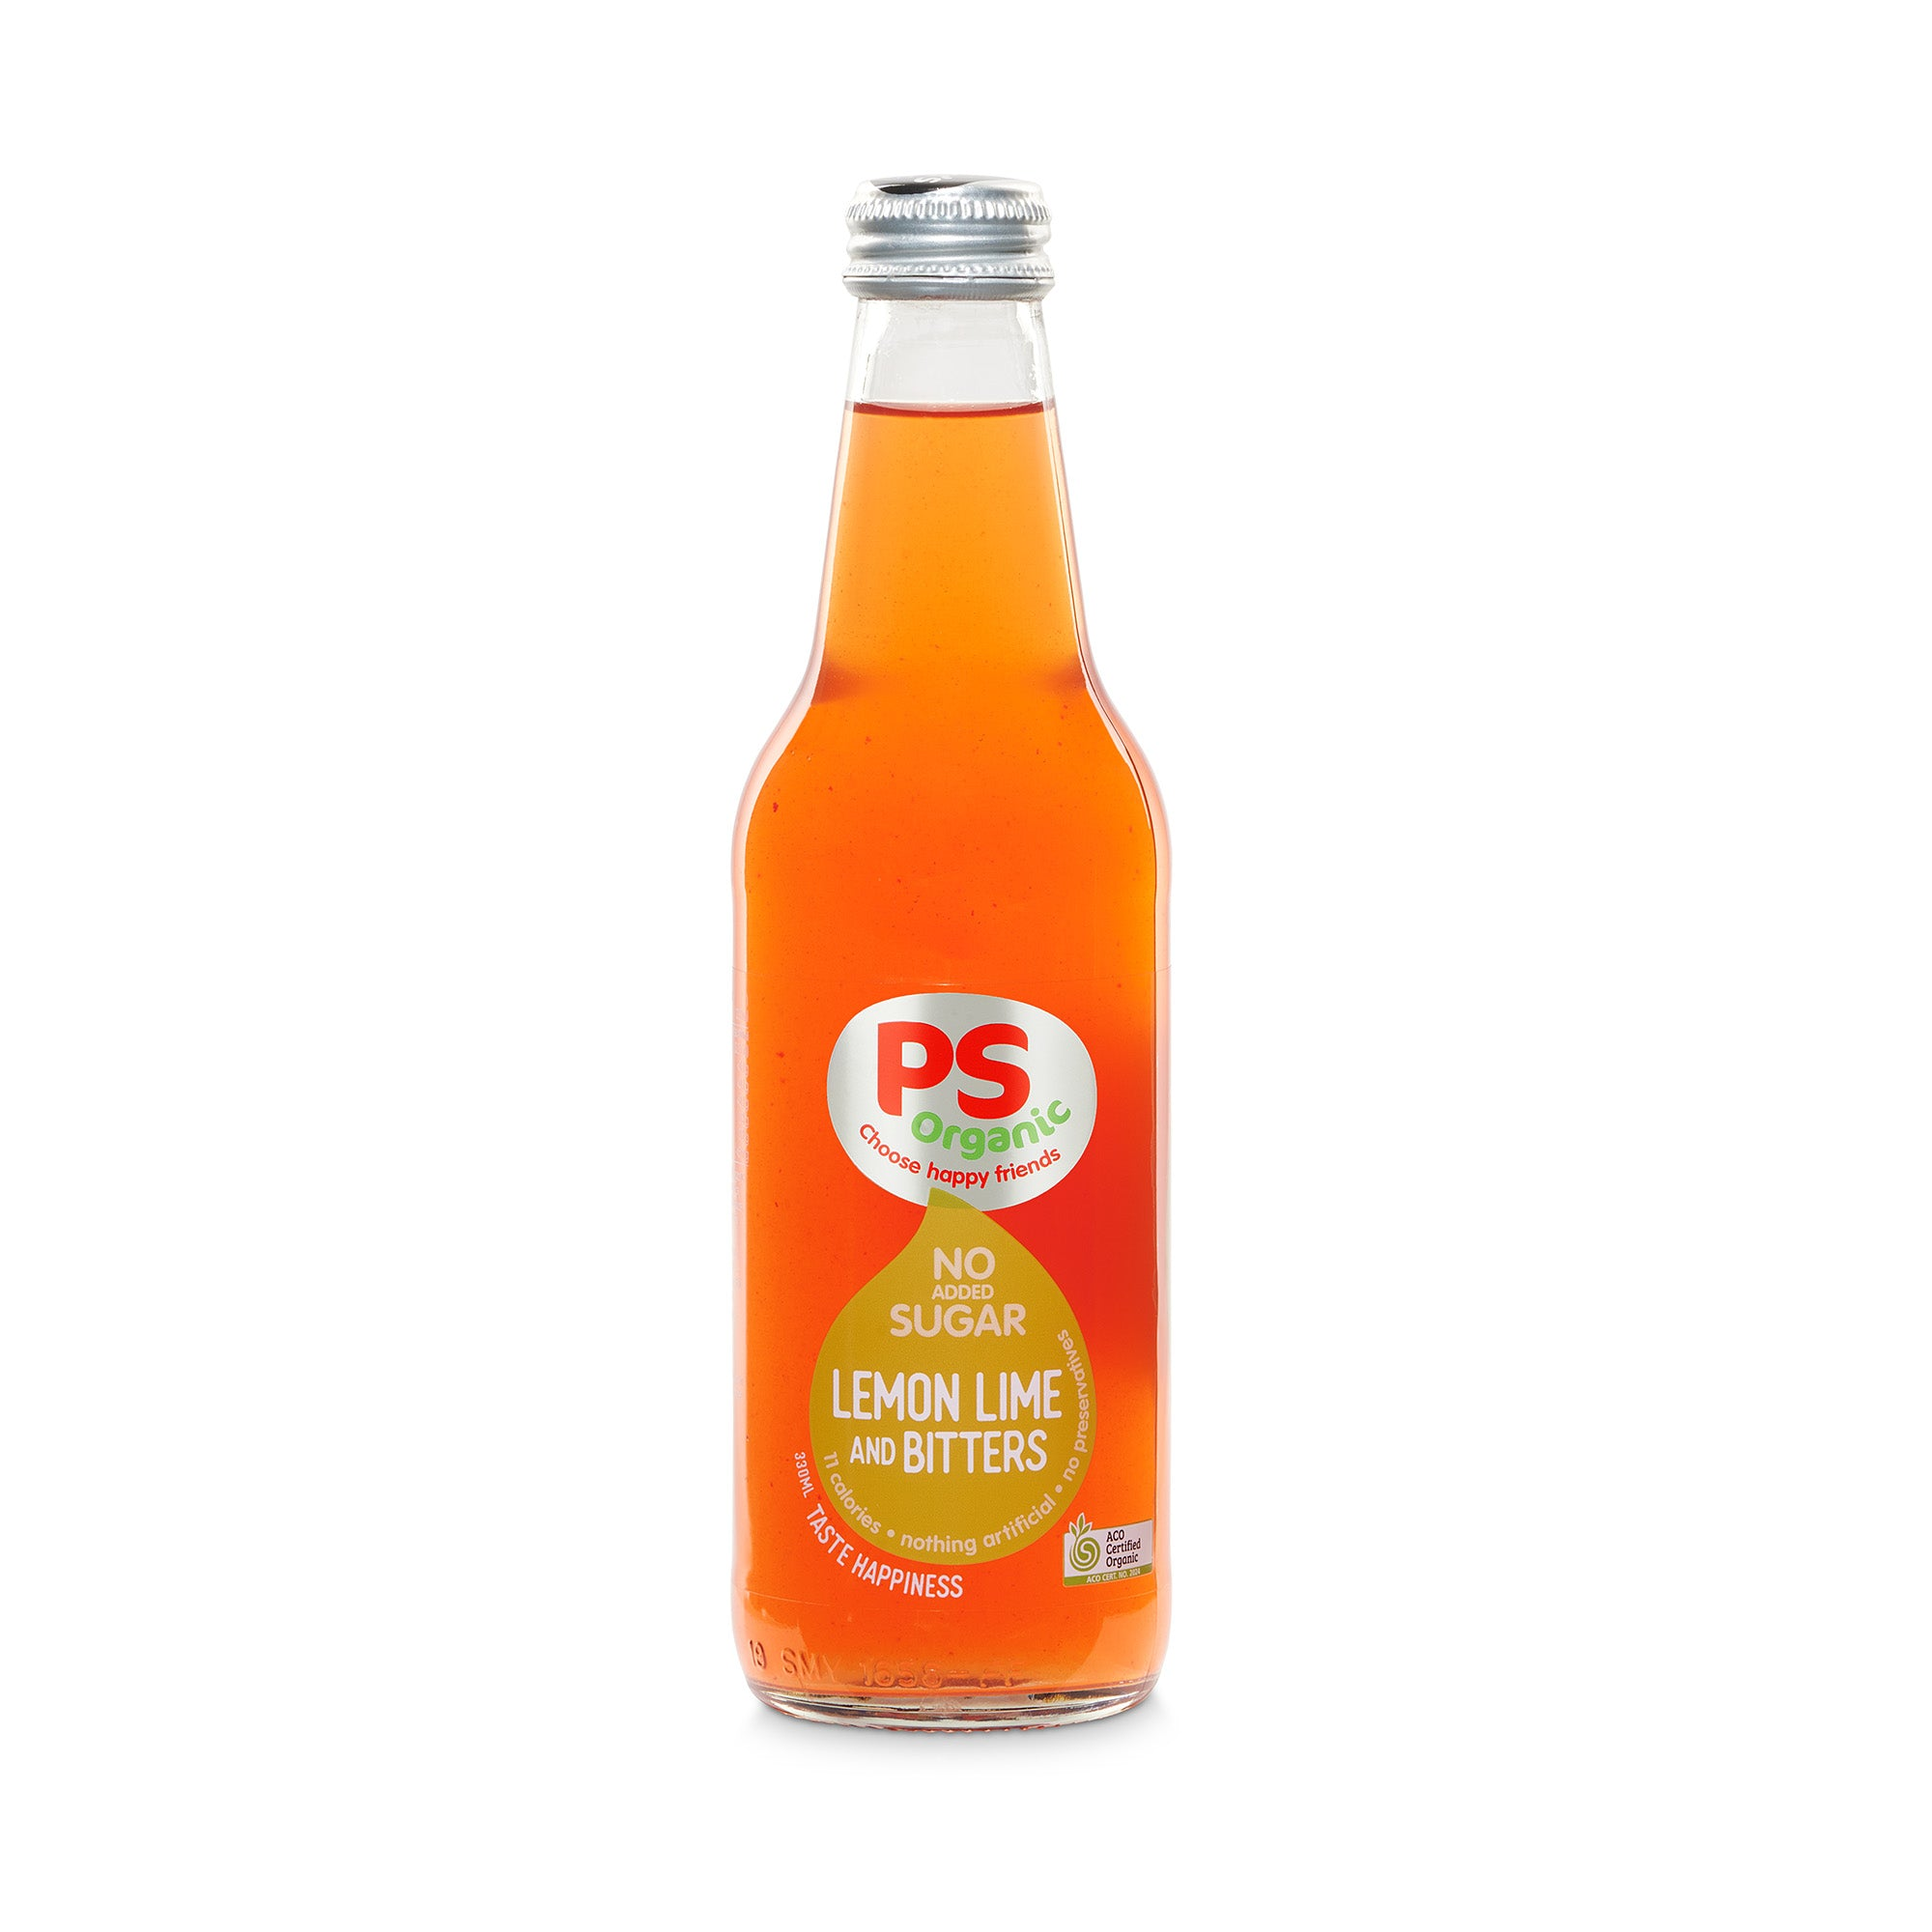 No Sugar Lemon Lime Bitters 330ml